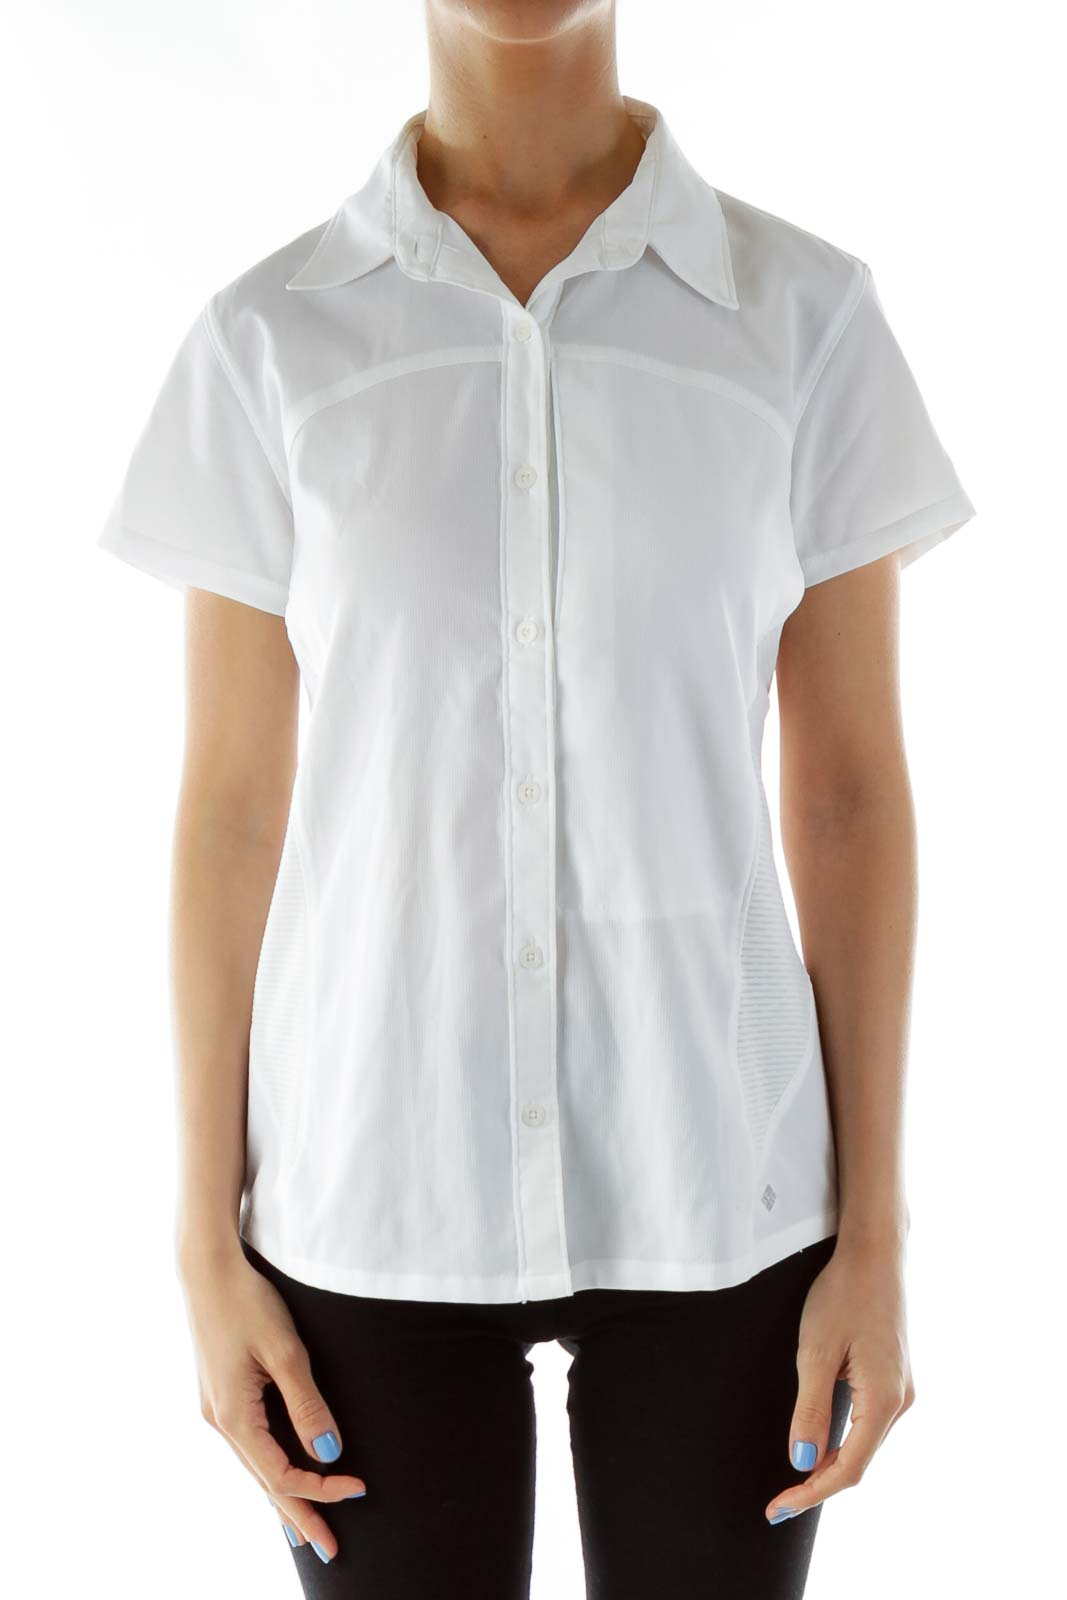 White Short Sleeve Collared Buttoned T-Shirt